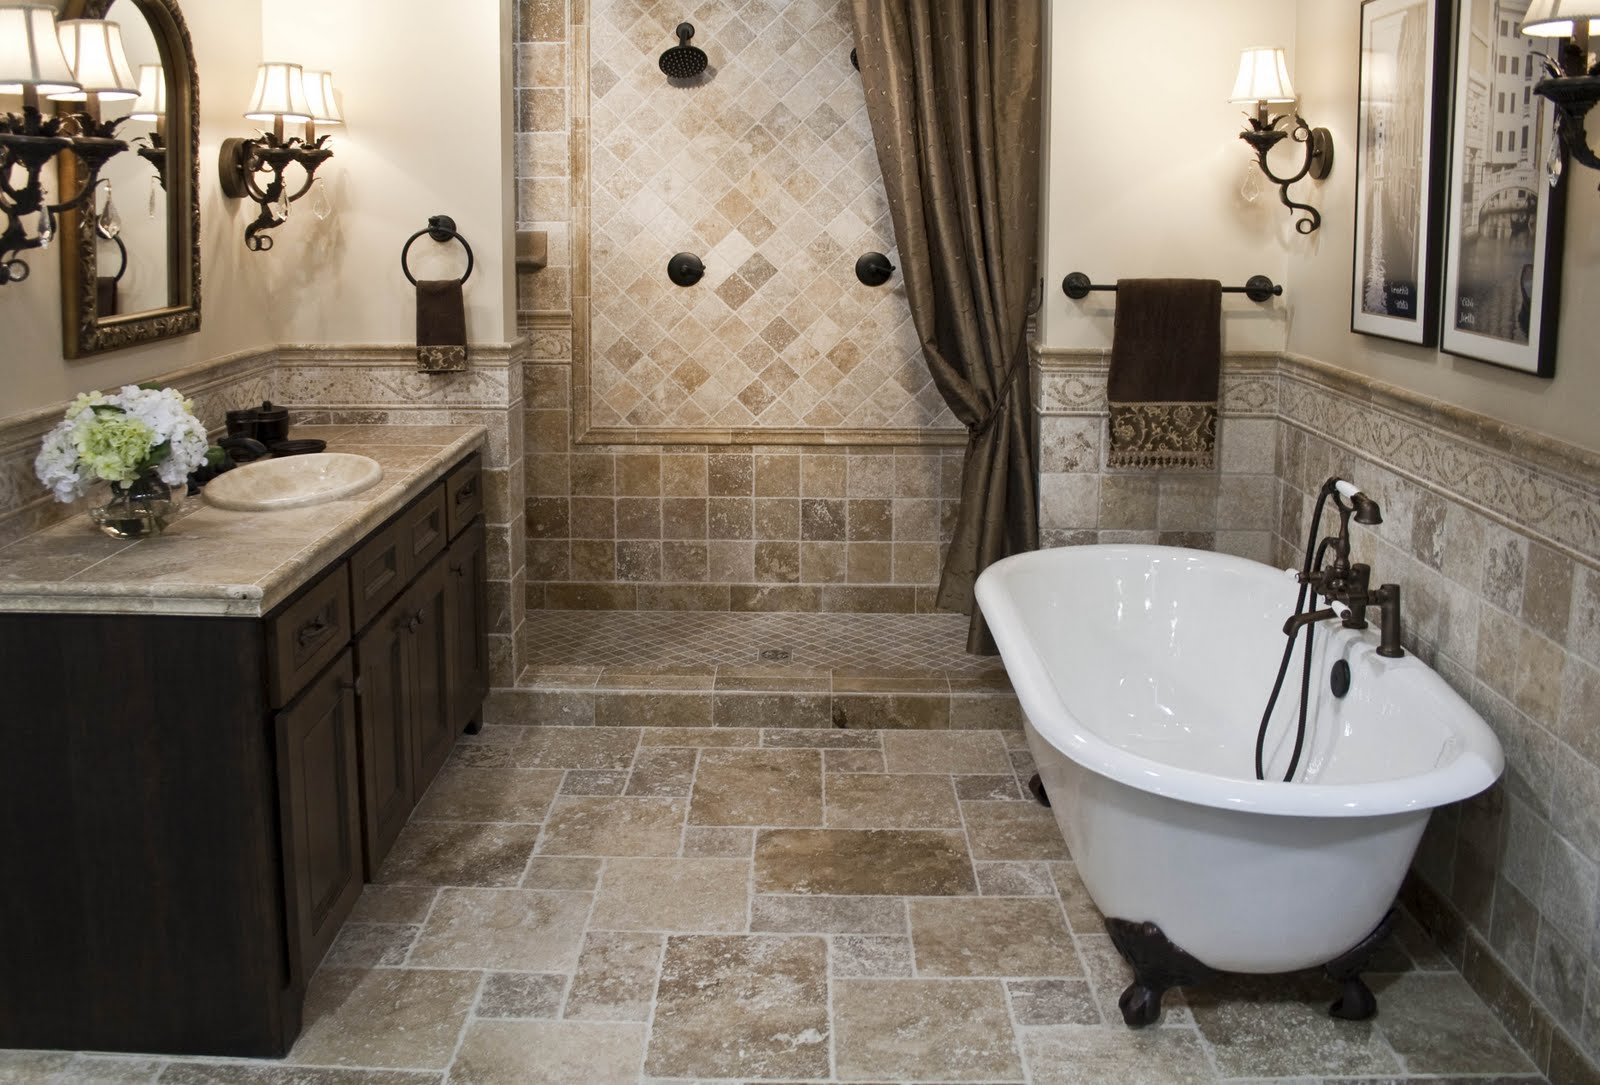 The top 20 small bathroom design ideas for 2014 qnud for Small bathroom ideas 2014